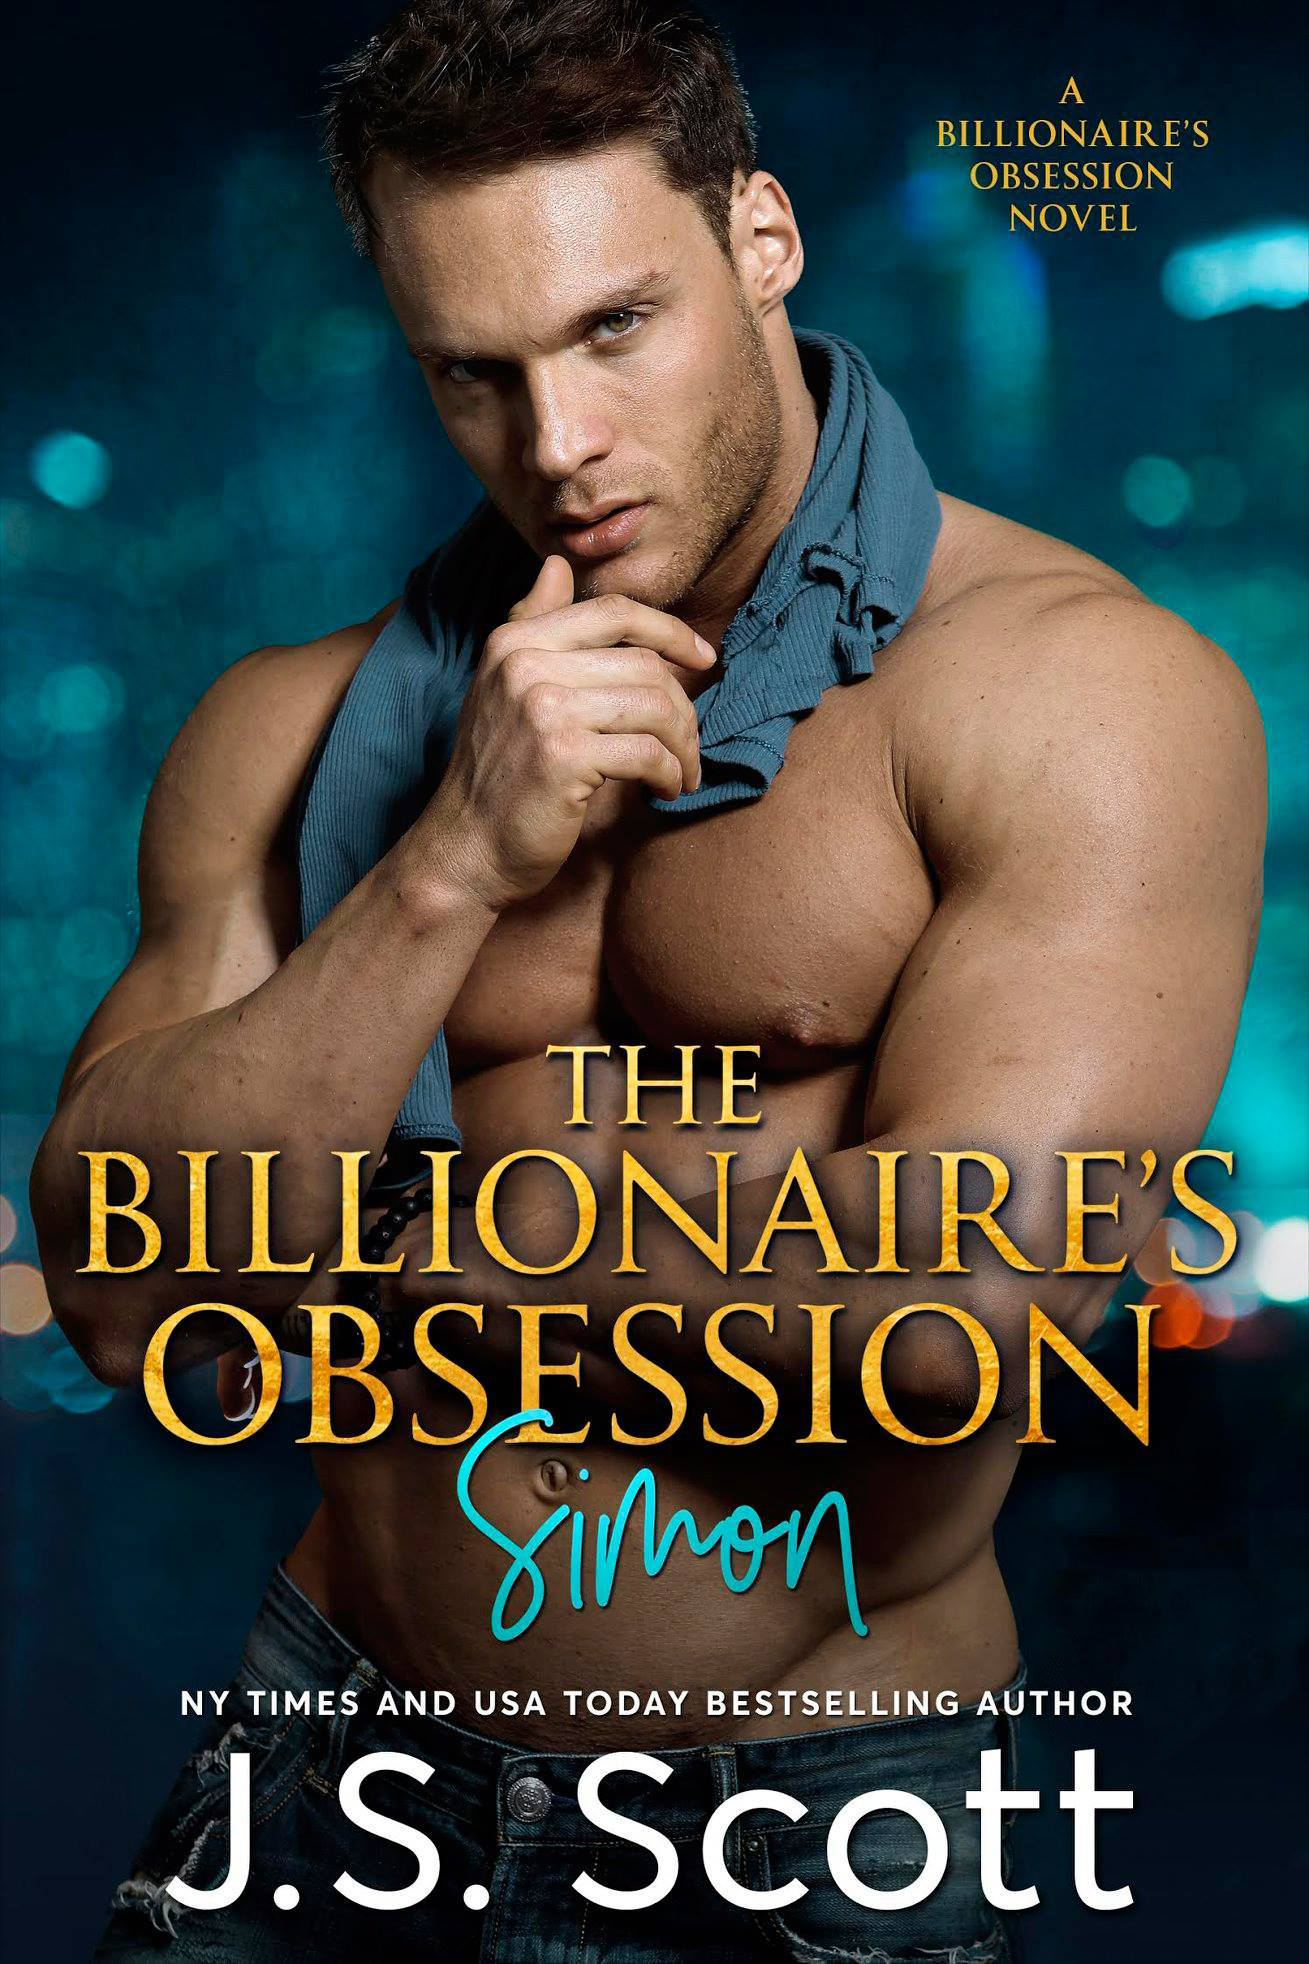 THE BILLIONAIRE'S OBSESSION -  SIMON